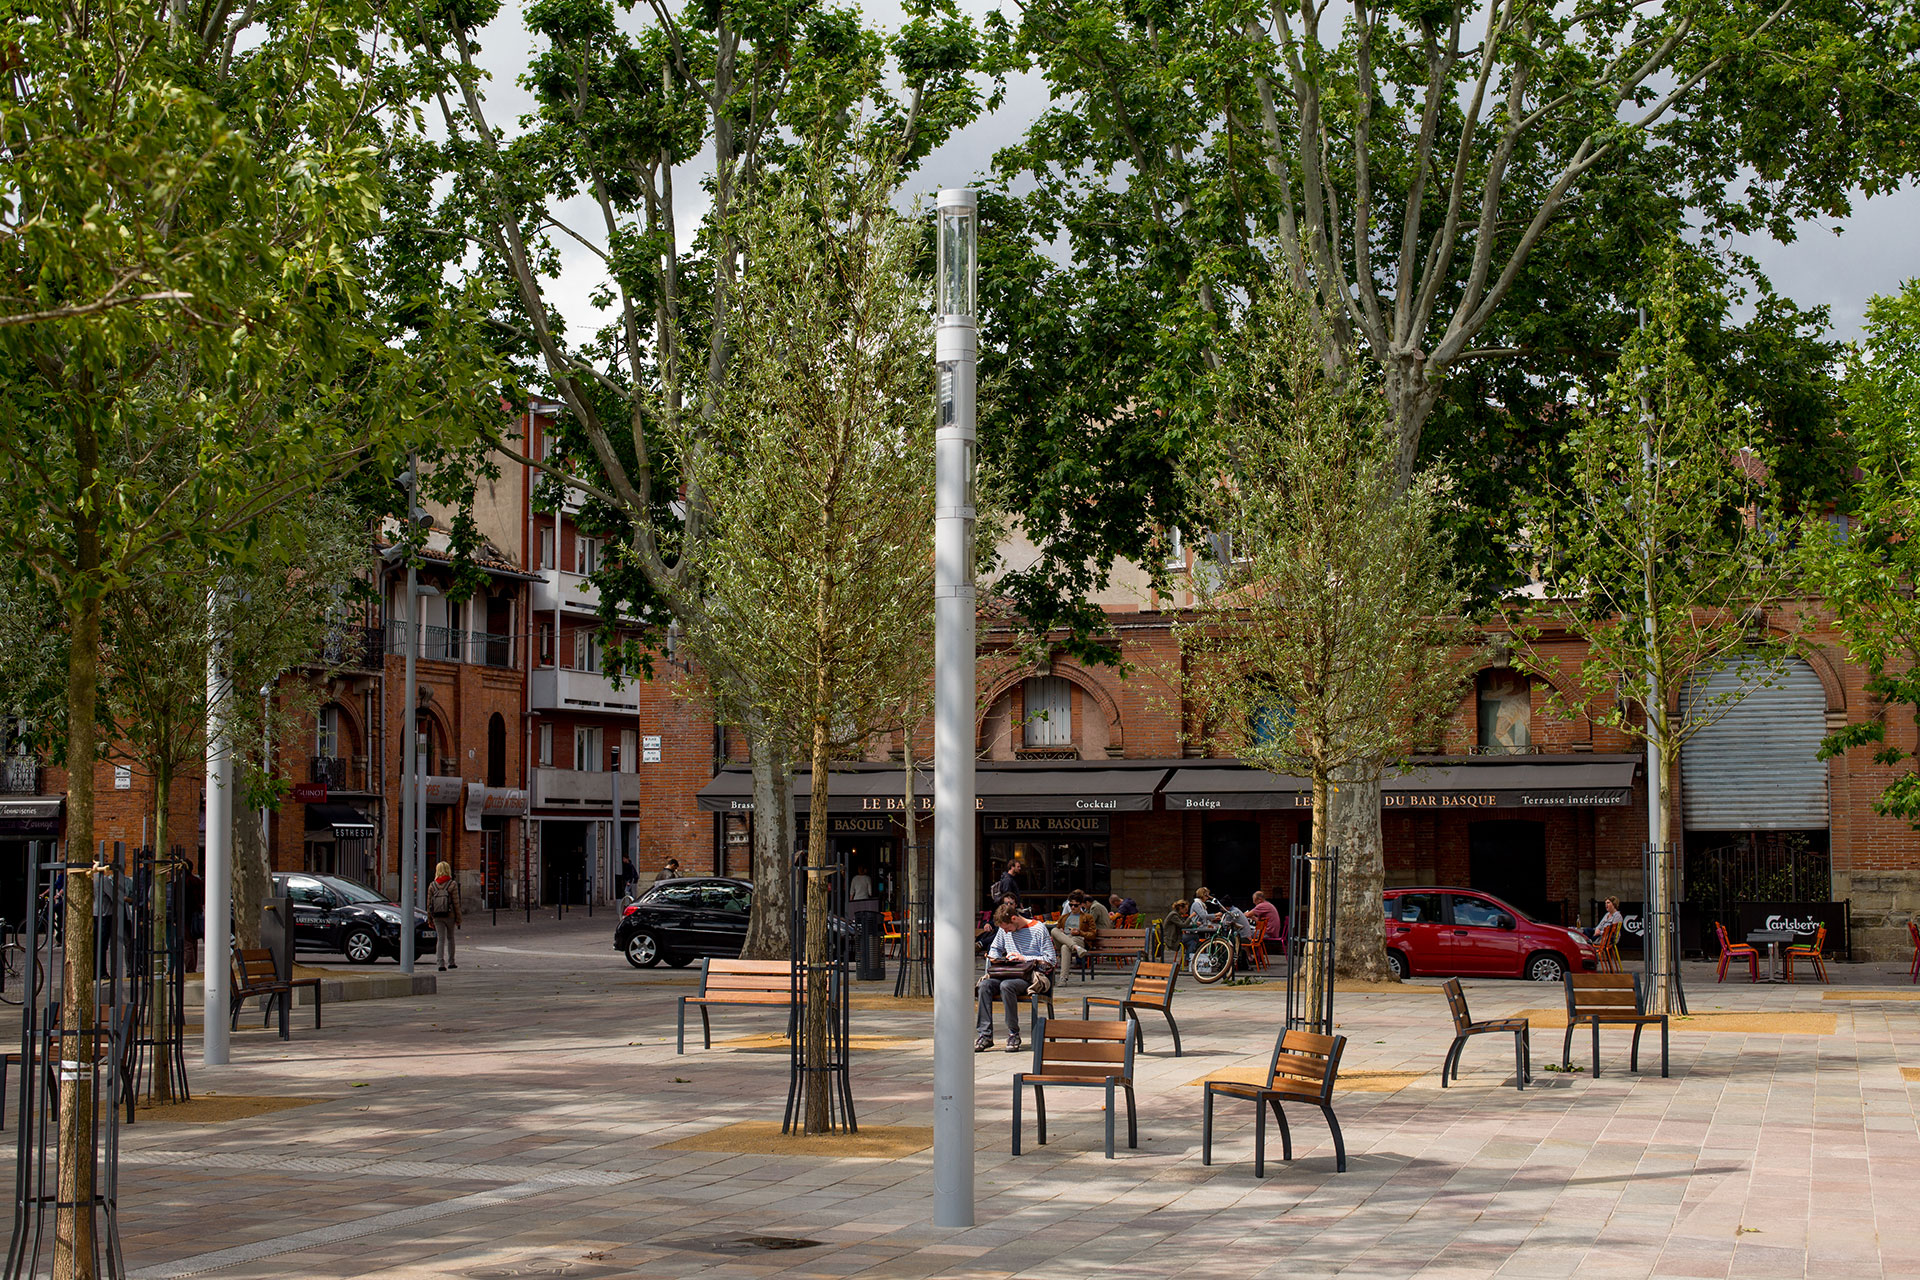 Shuffle declutters Saint Pierre Square by proving light, CCTV and WiFi in one aesthetic column